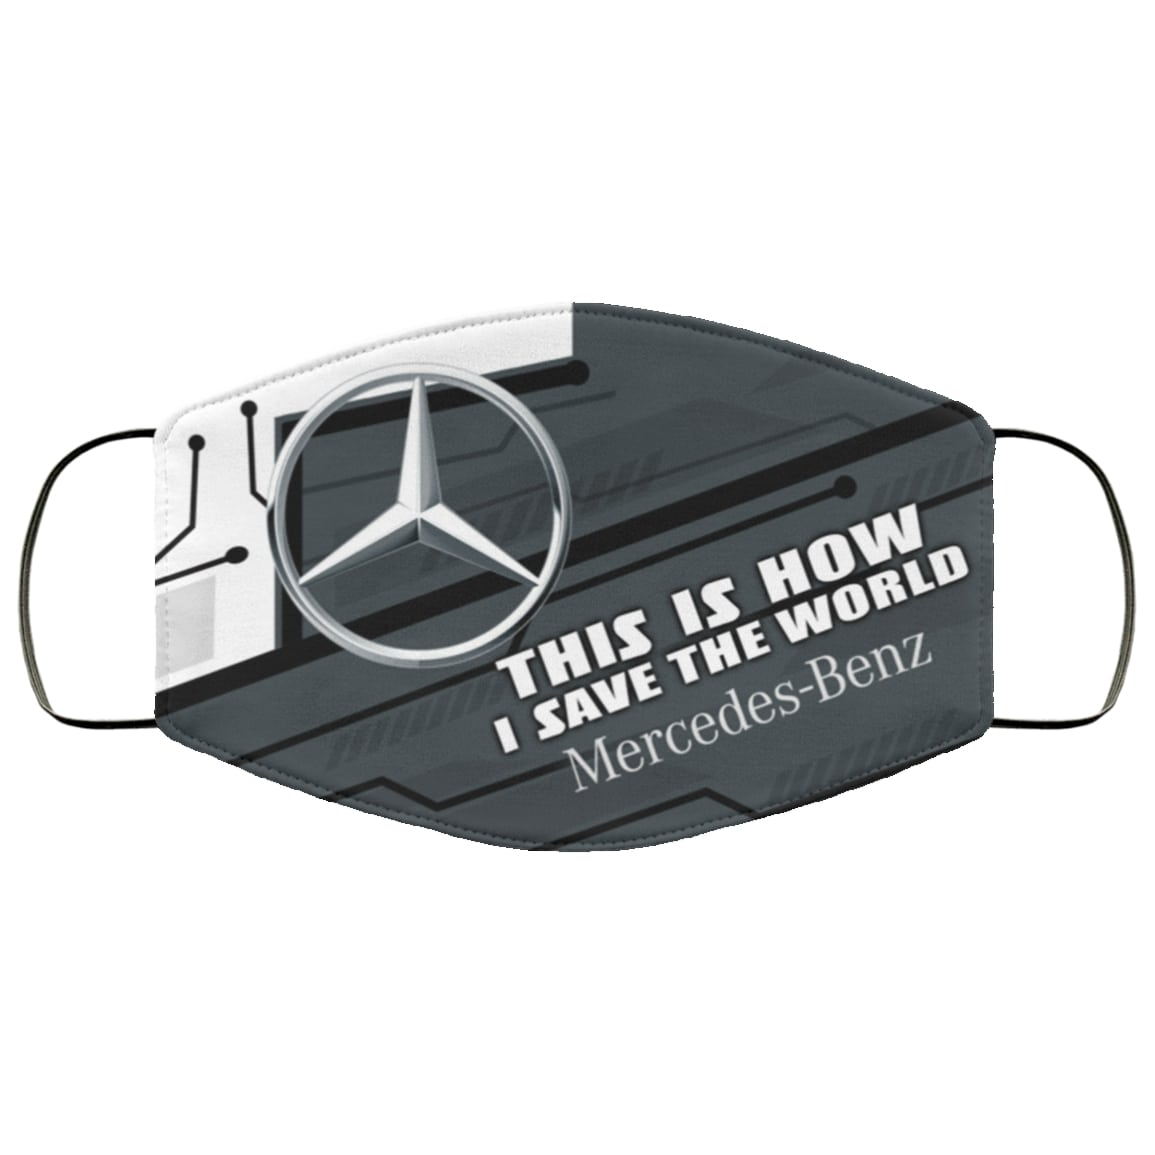 This is how i save the world mercedes-benz full printing face mask 4